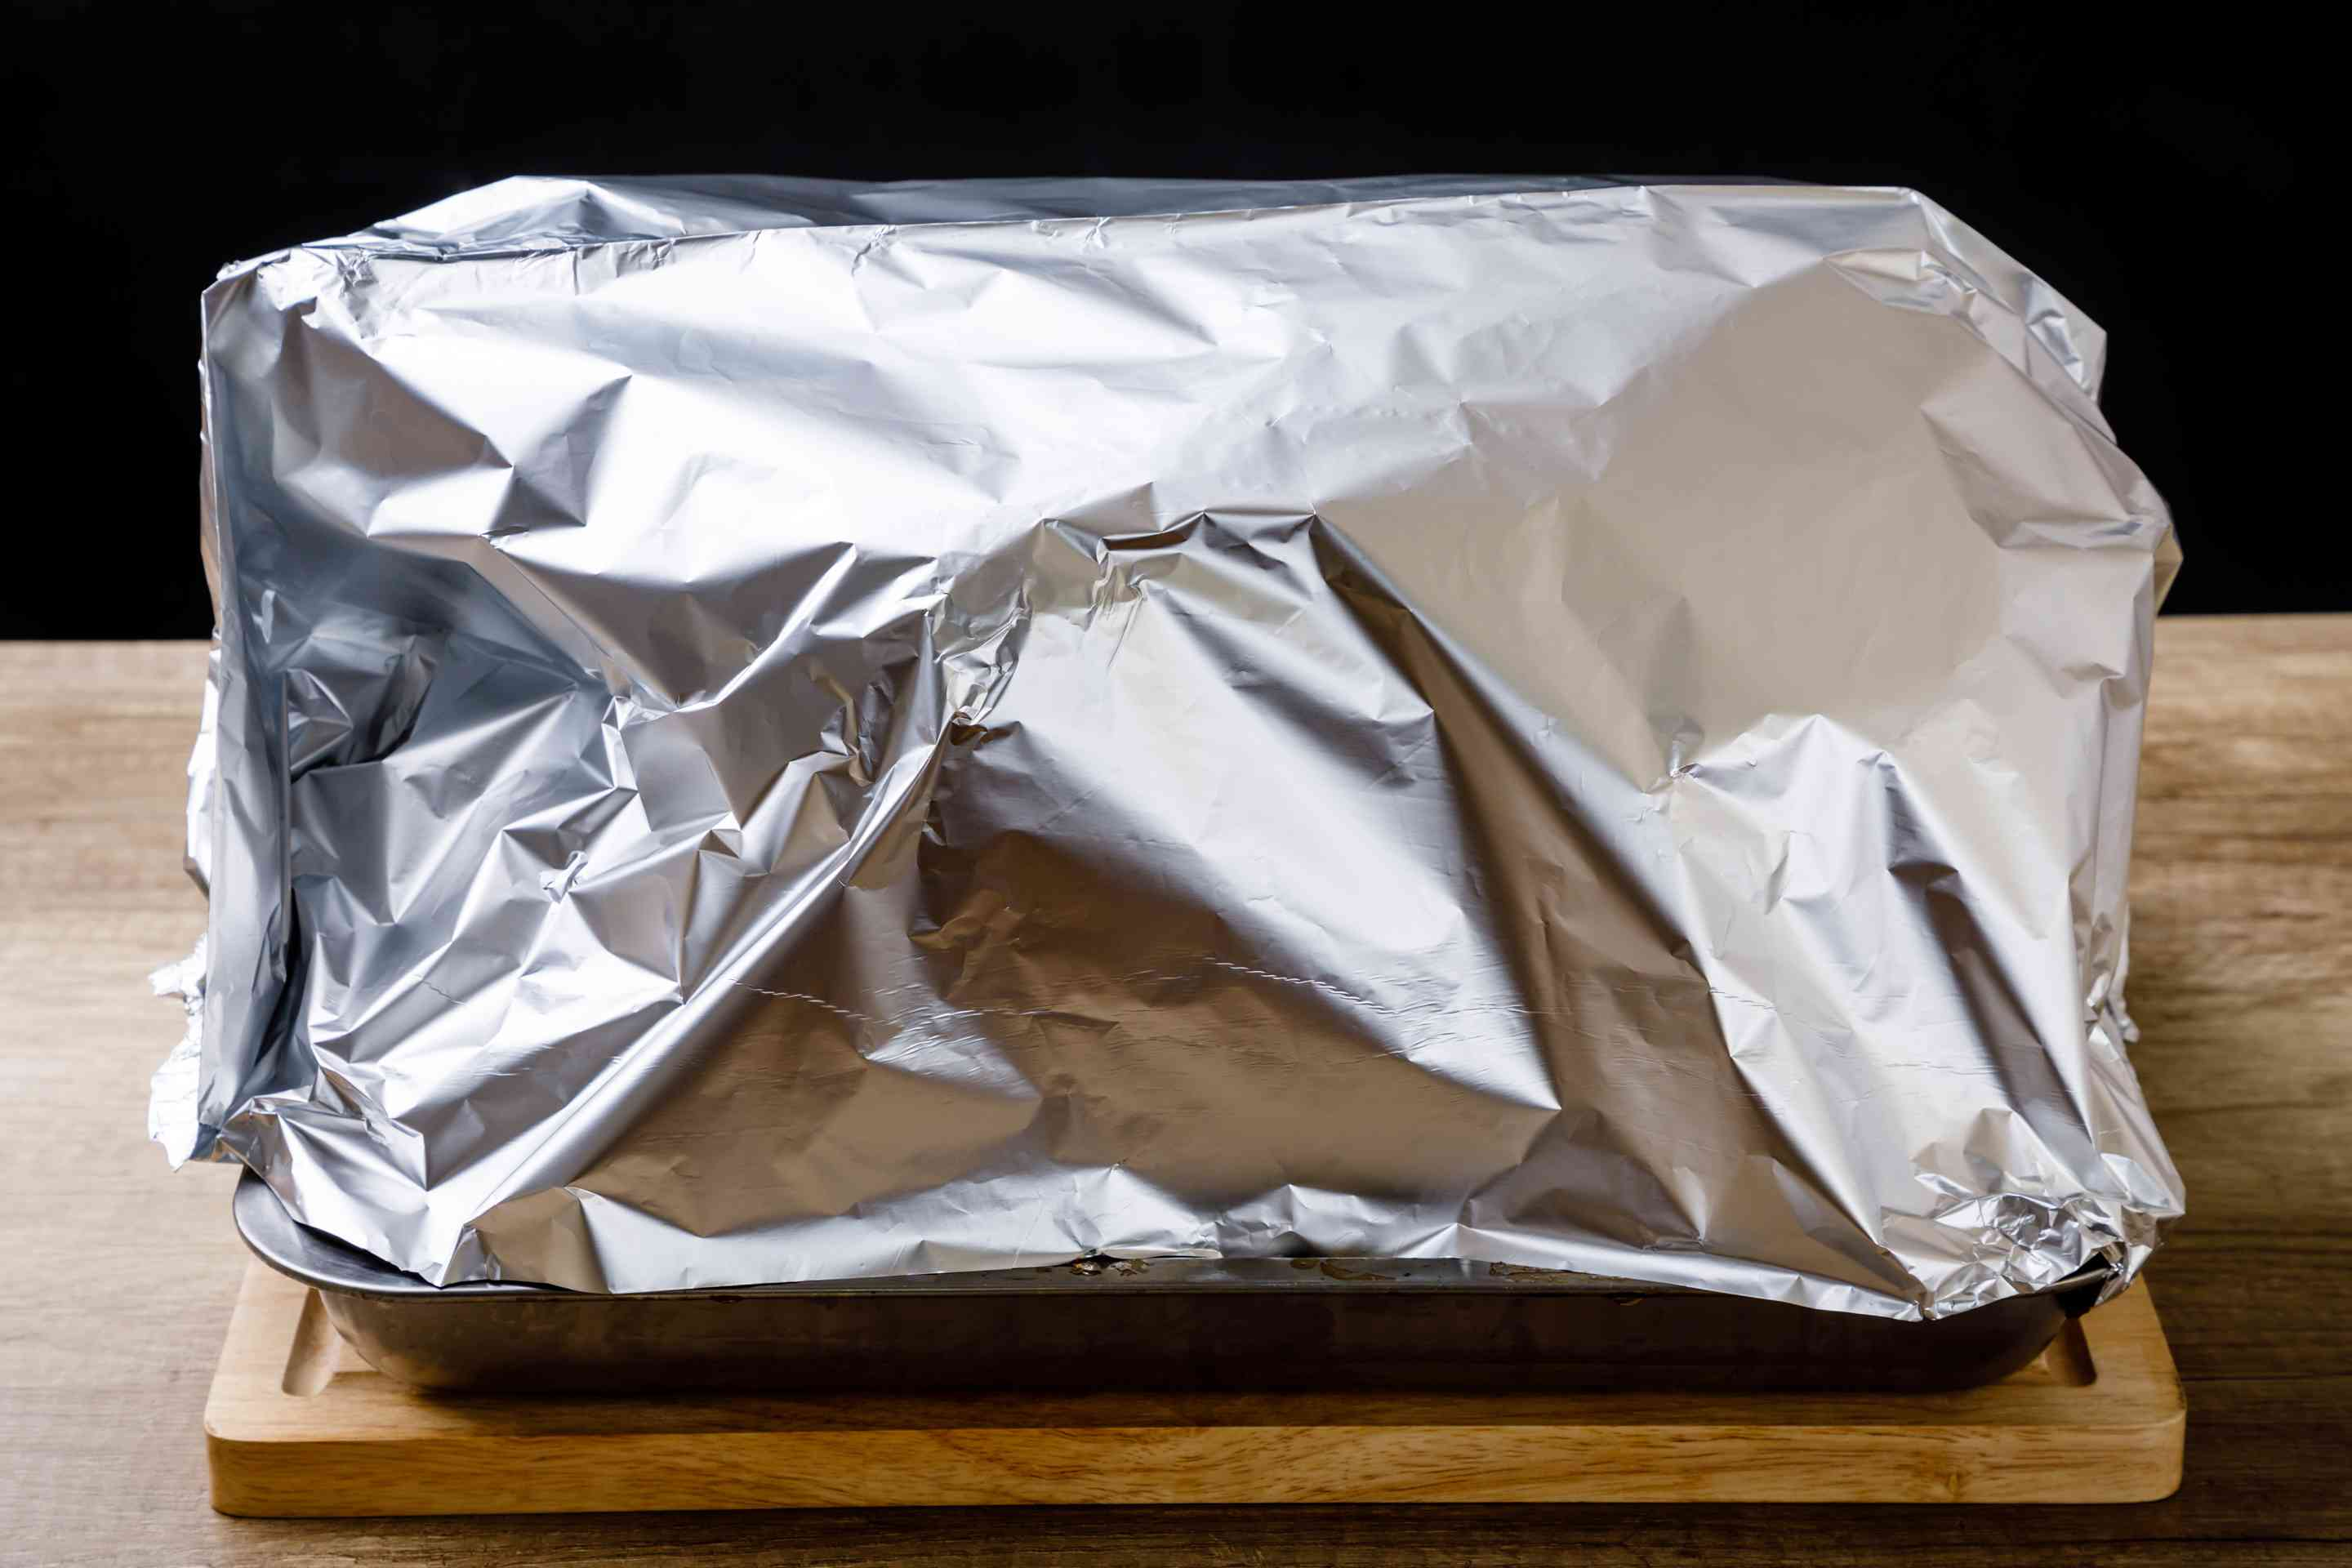 Cover turkey with foil